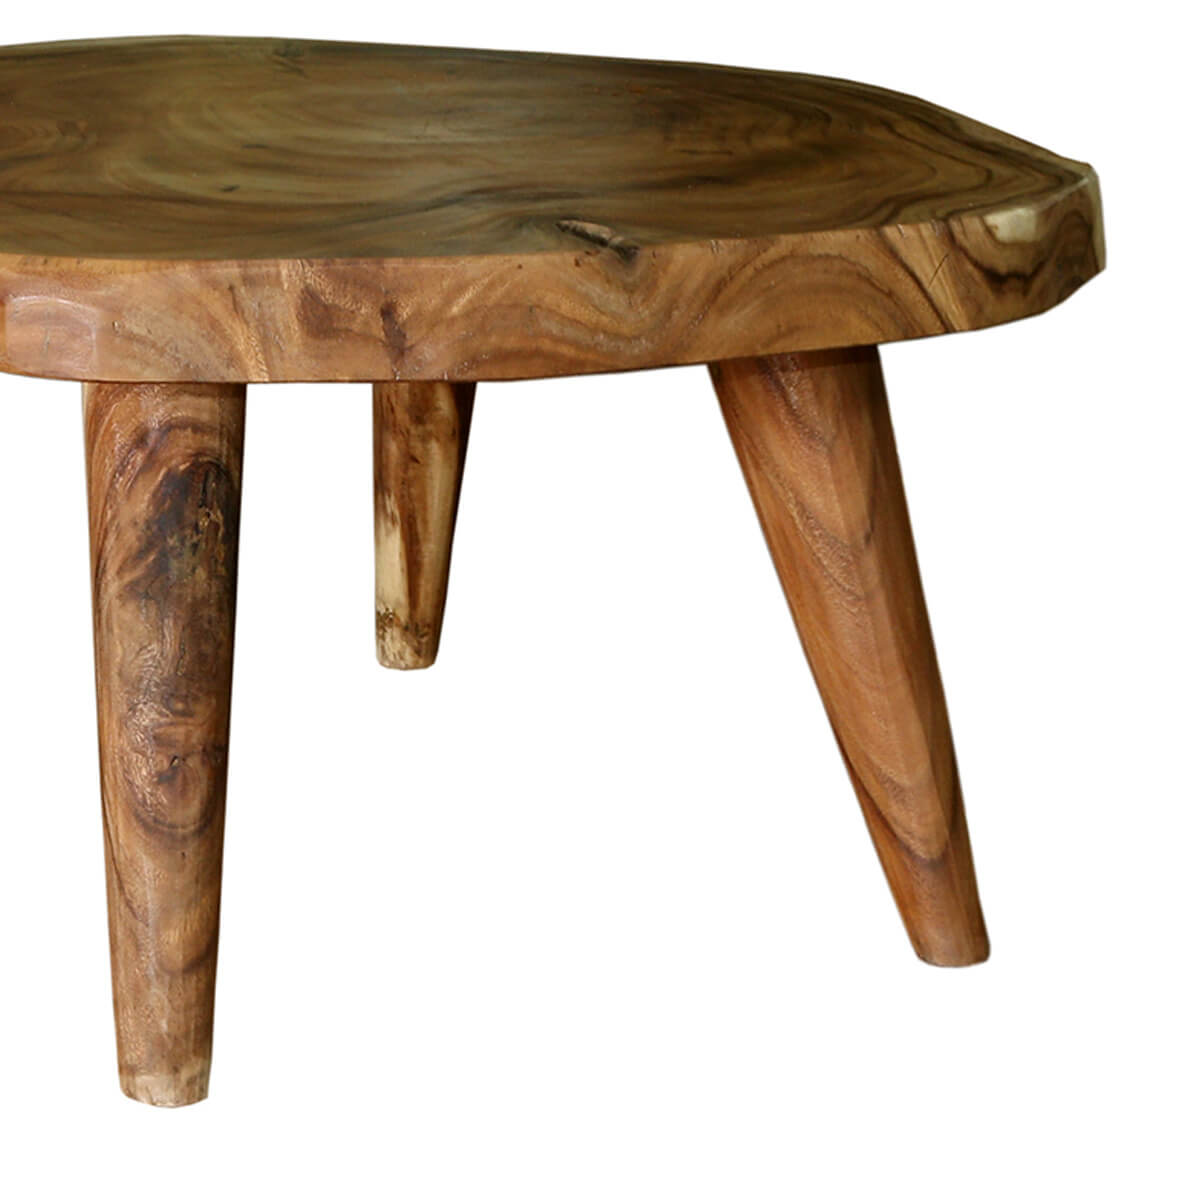 White Tree Stump Coffee Table: Escambia Tree Stump Live Edge Round Coffee Table